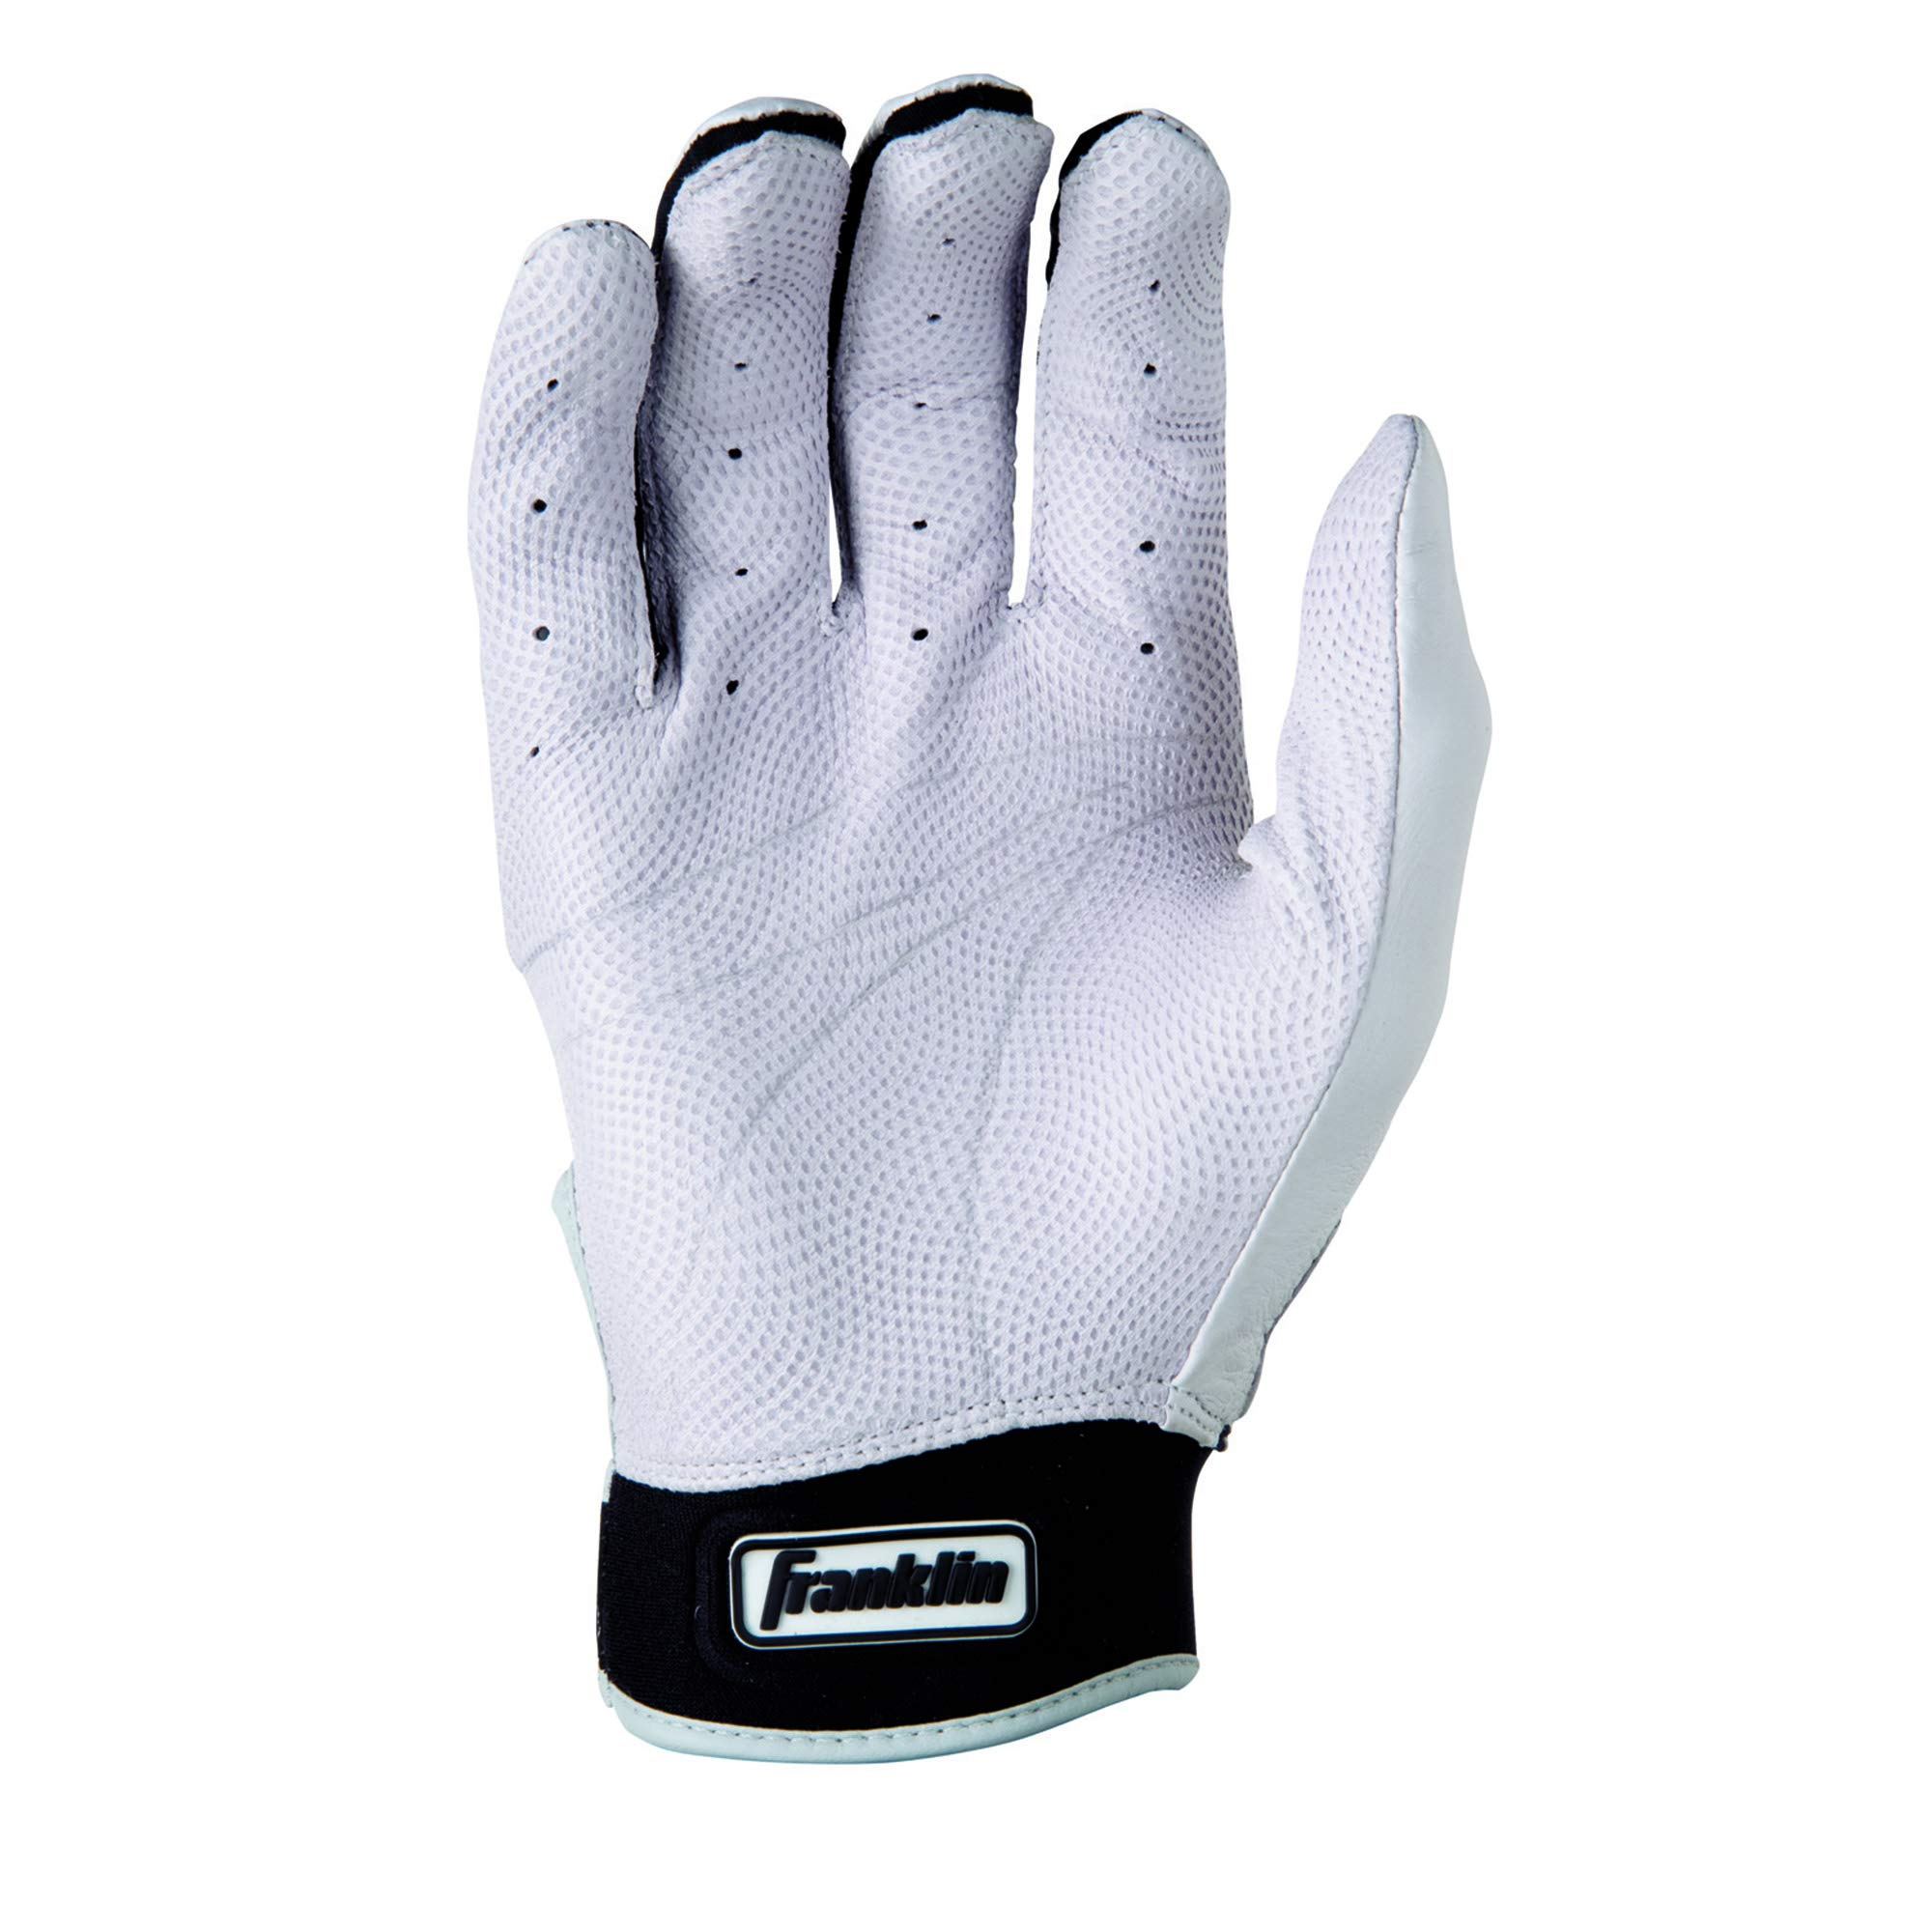 Franklin Sports CFX Pro Adult Series Batting Glove by Franklin Sports (Image #4)